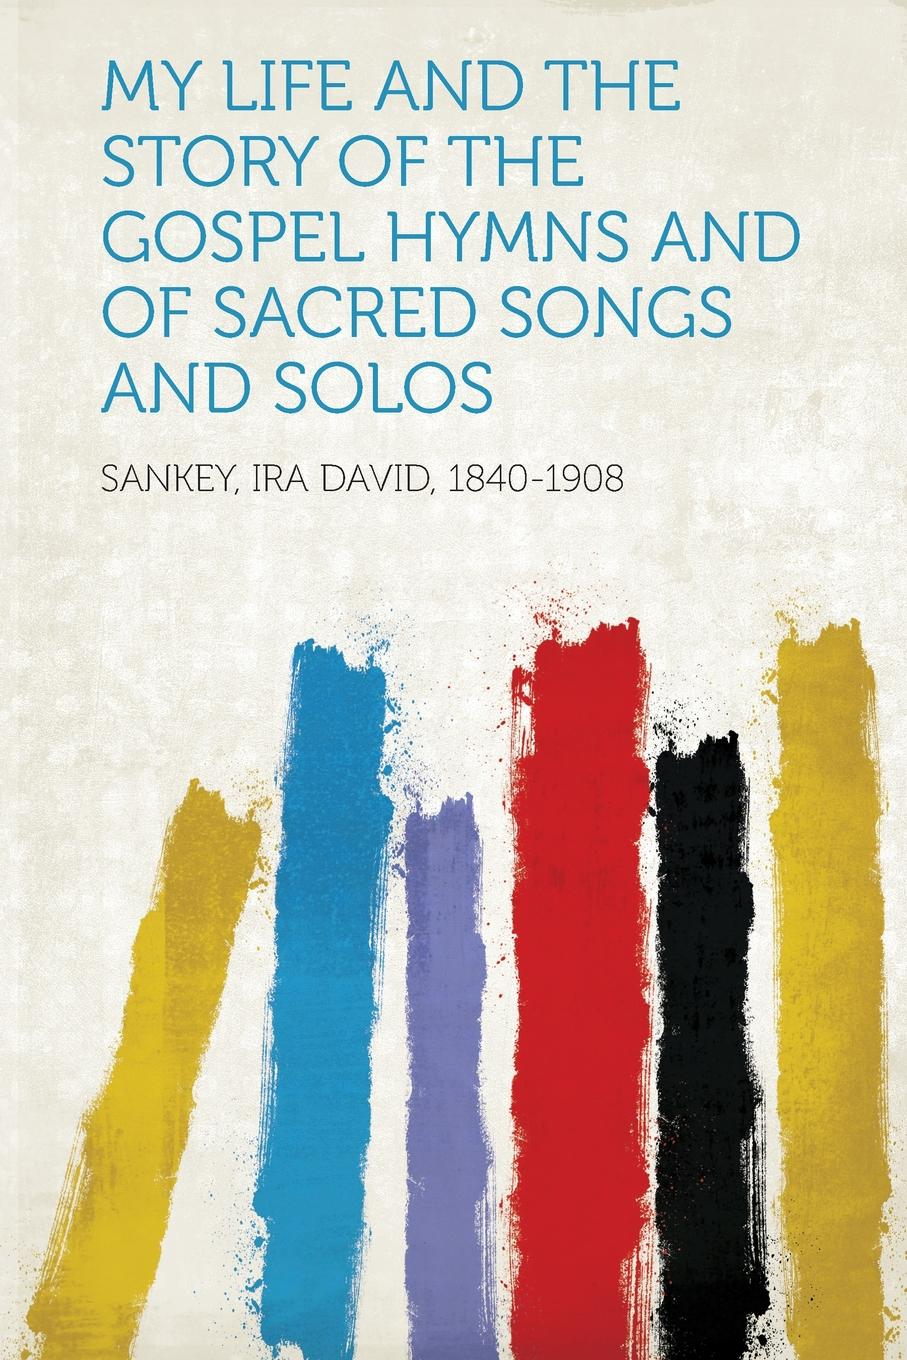 Sankey Ira David 1840-1908 My Life and the Story of the Gospel Hymns and of Sacred Songs and Solos sankey ira david 1840 1908 my life and the story of the gospel hymns and of sacred songs and solos